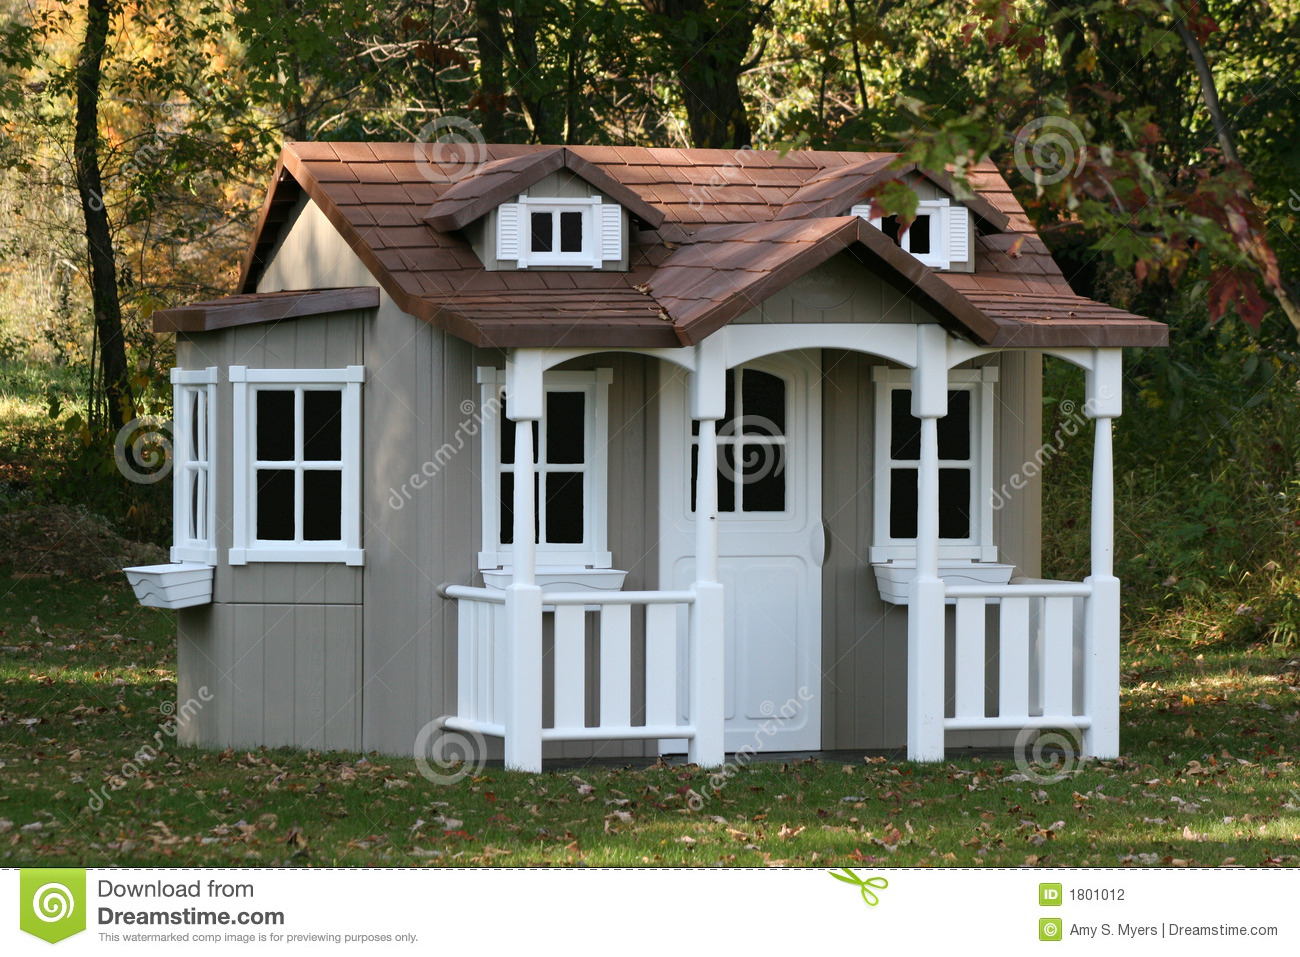 Do It Yourself Home Design: Childrens Playhouse Stock Photography